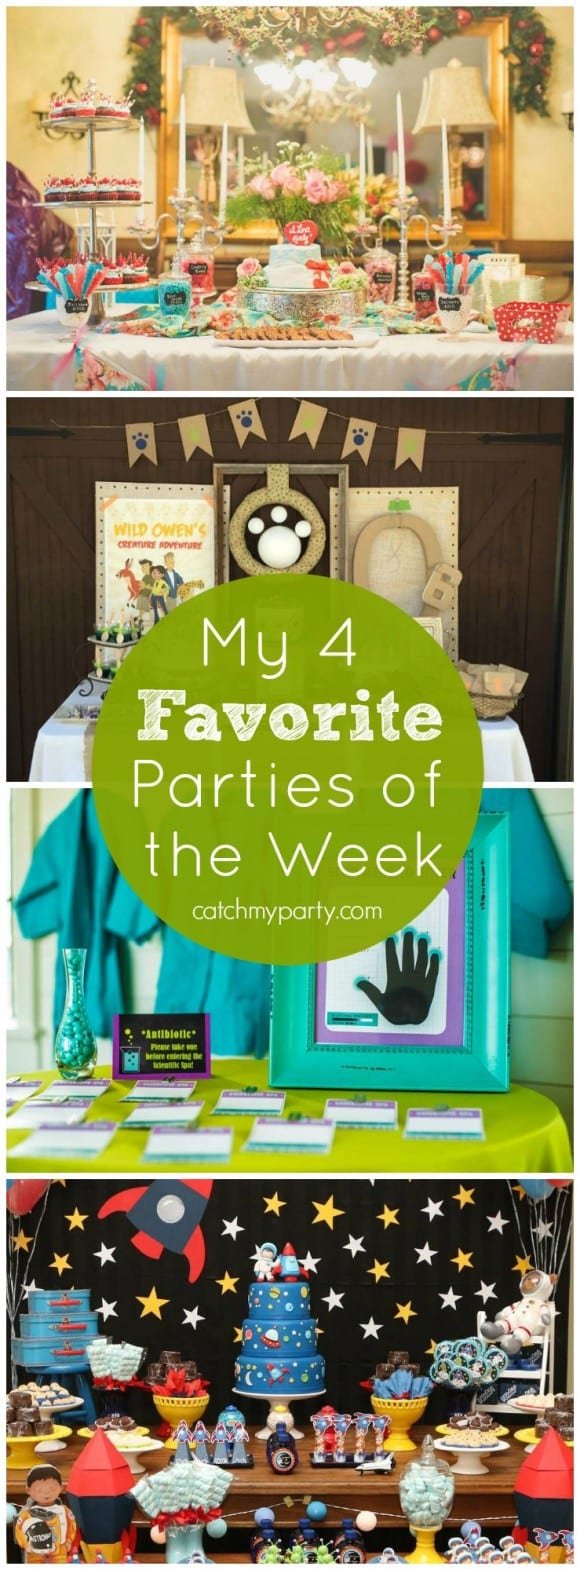 My 4 Favorite Parties of the Week include a retro housewife bridal shower, a Wild Kratts party, a girl science spa party, and an outer space party! | Catchmyparty.com